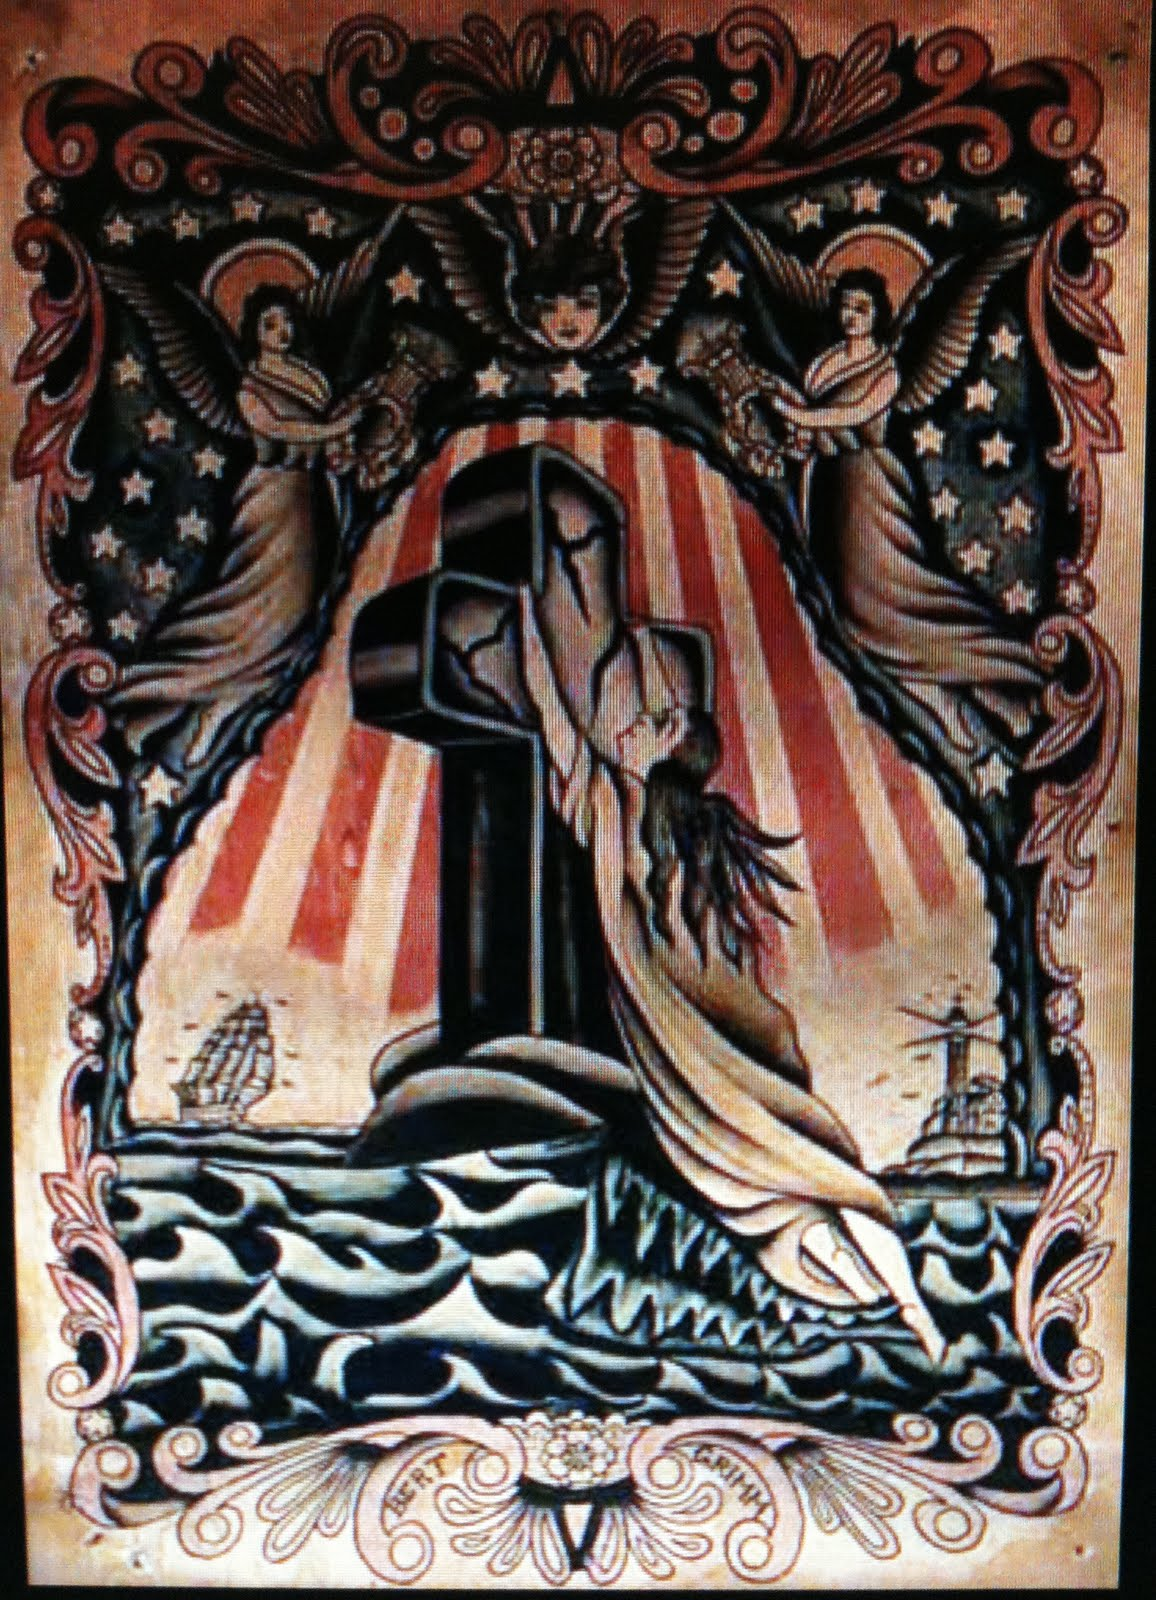 Xtimemachinex A Few Vintage 1910 1940 American Tattoo Ideas And Designs